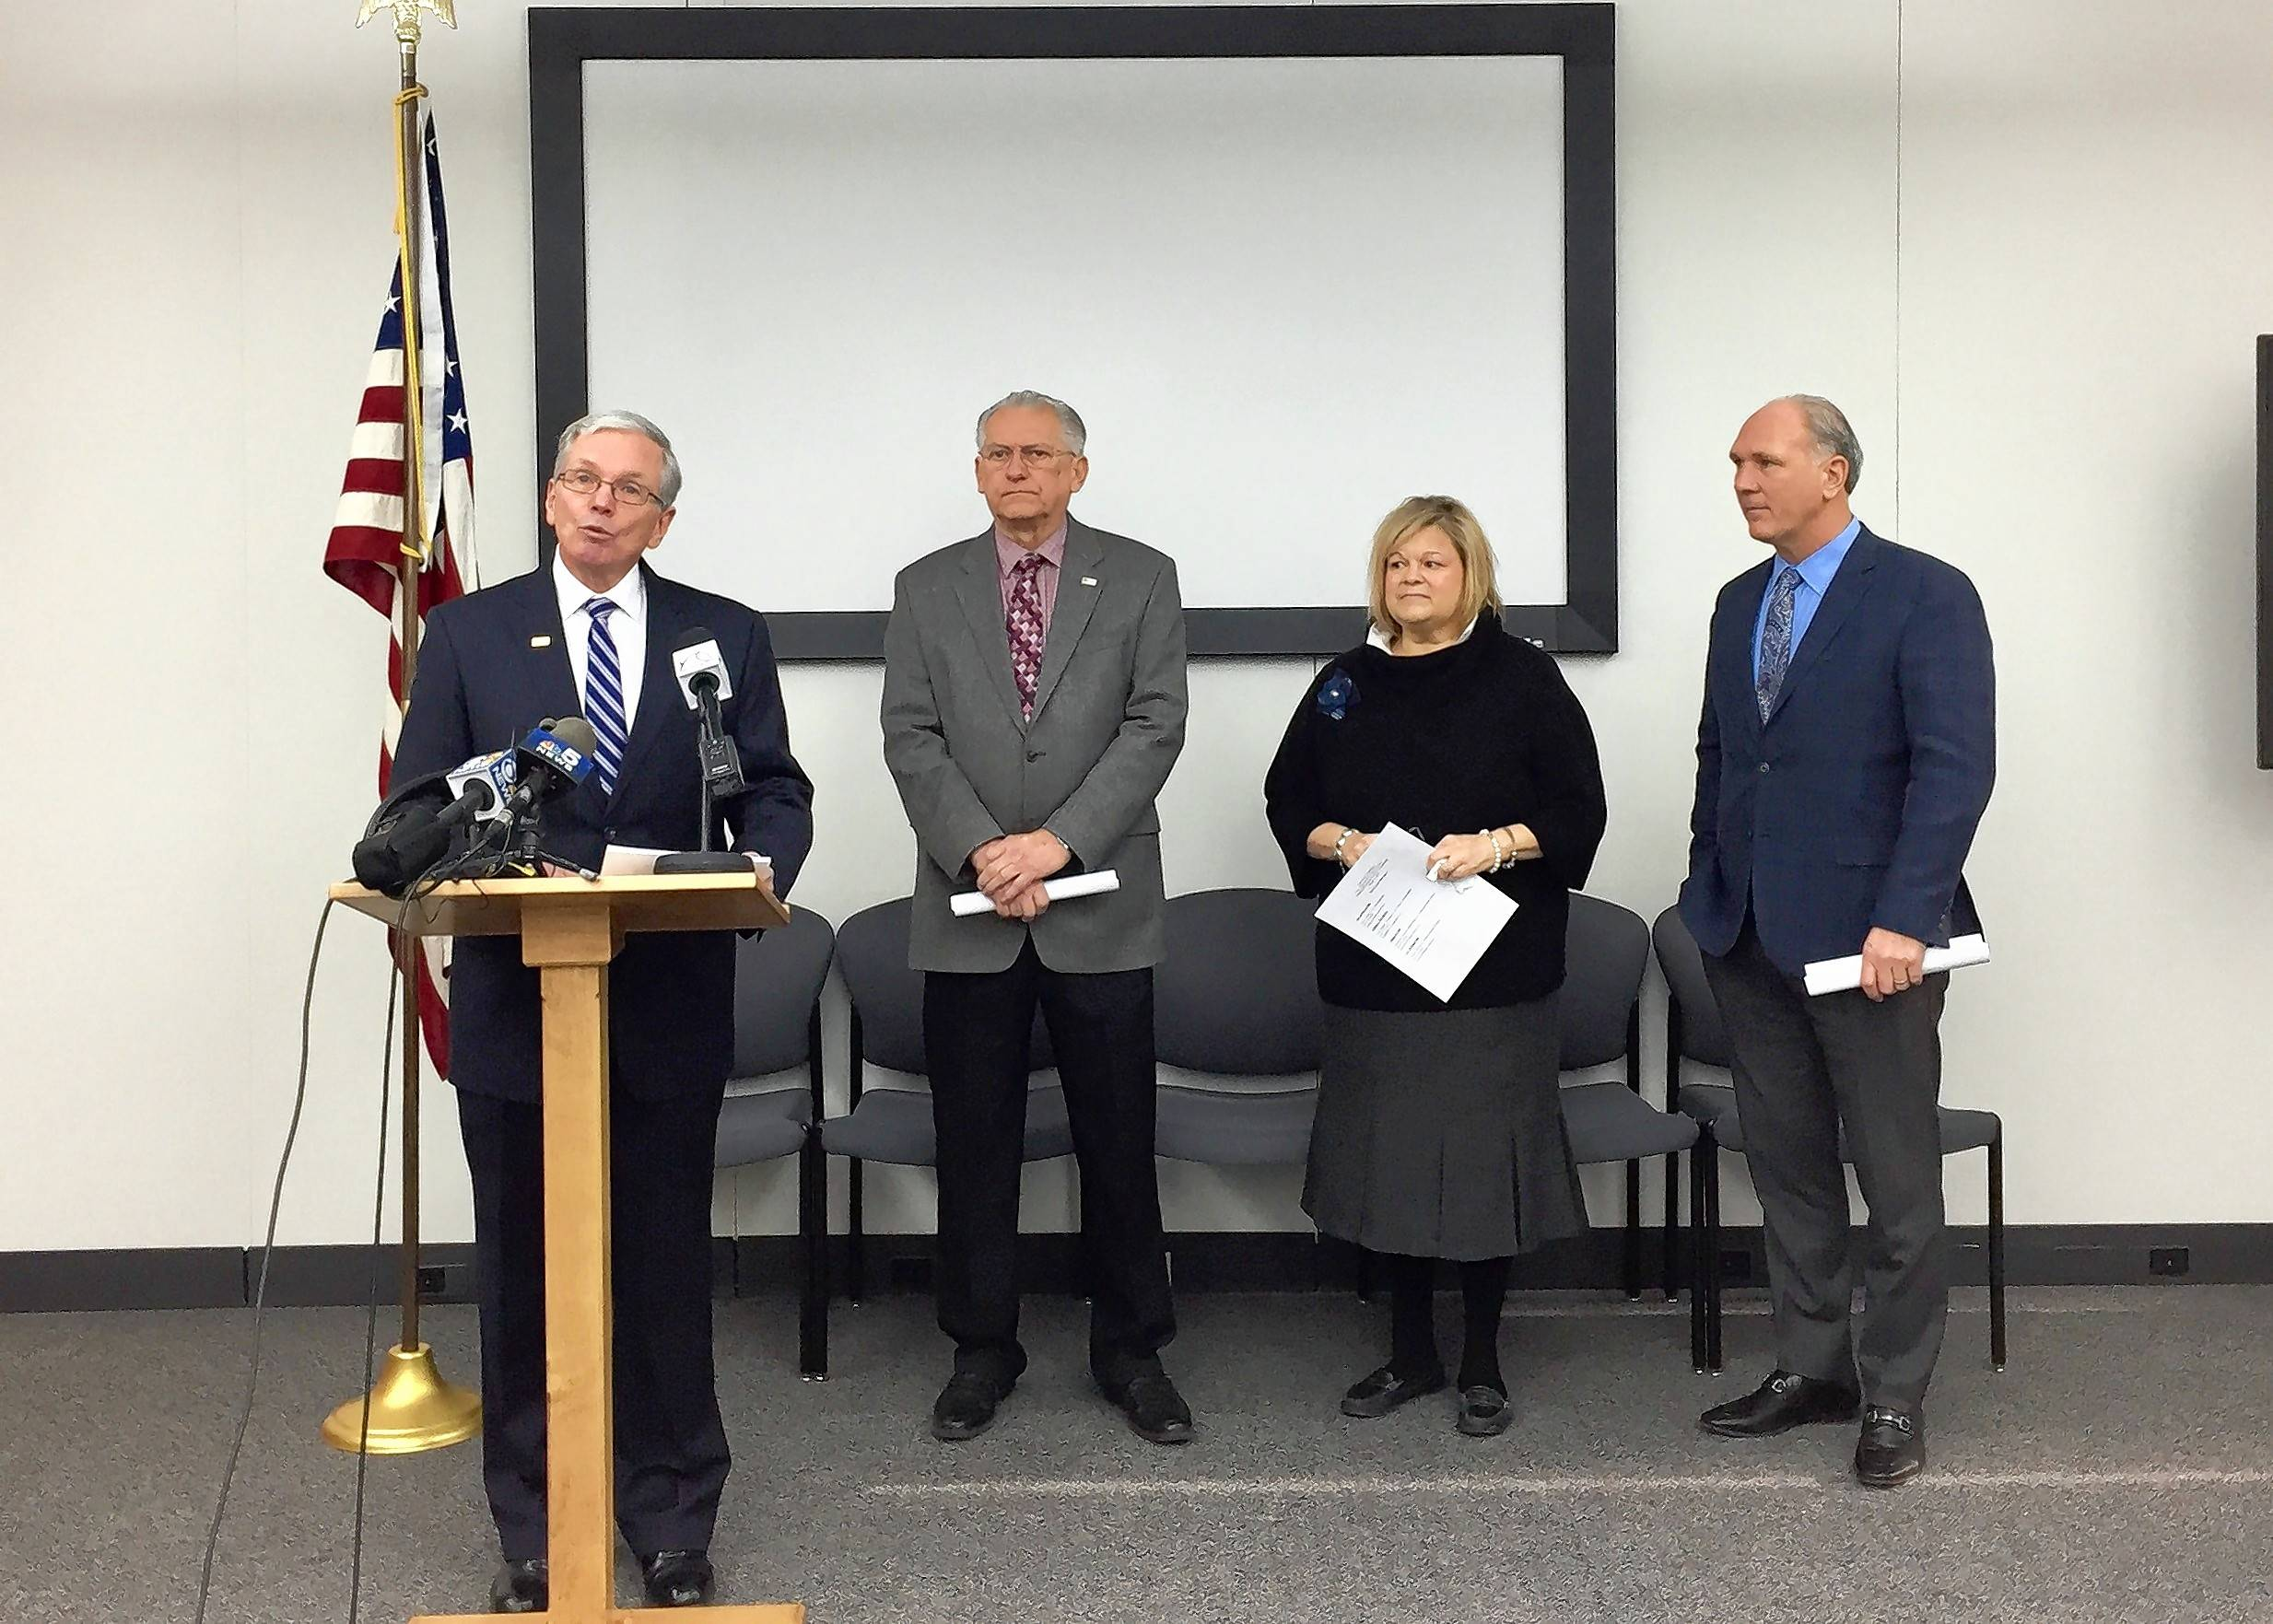 Mayors of Warrenville, Lisle, Woodridge and Naperville all say they oppose a potential ballot question that could ask if voters want to annex the three smaller communities into Naperville. A judge is expected to decide Thursday whether the question will appear on the April 4 ballot.